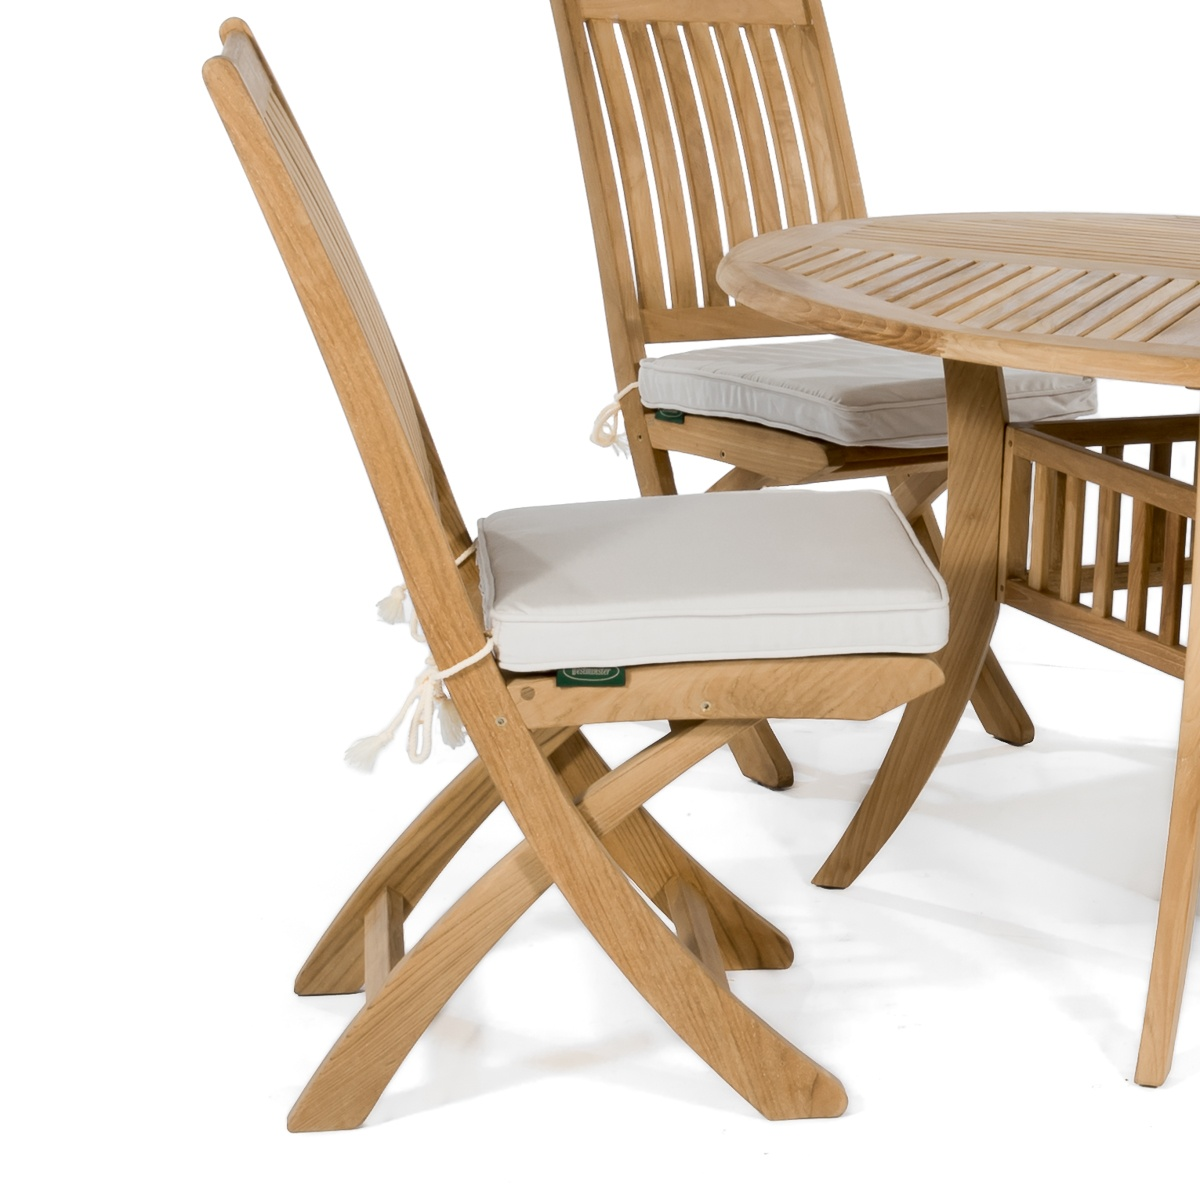 Sunbrella Dining Chair Cushion Westminster Teak Outdoor Furniture